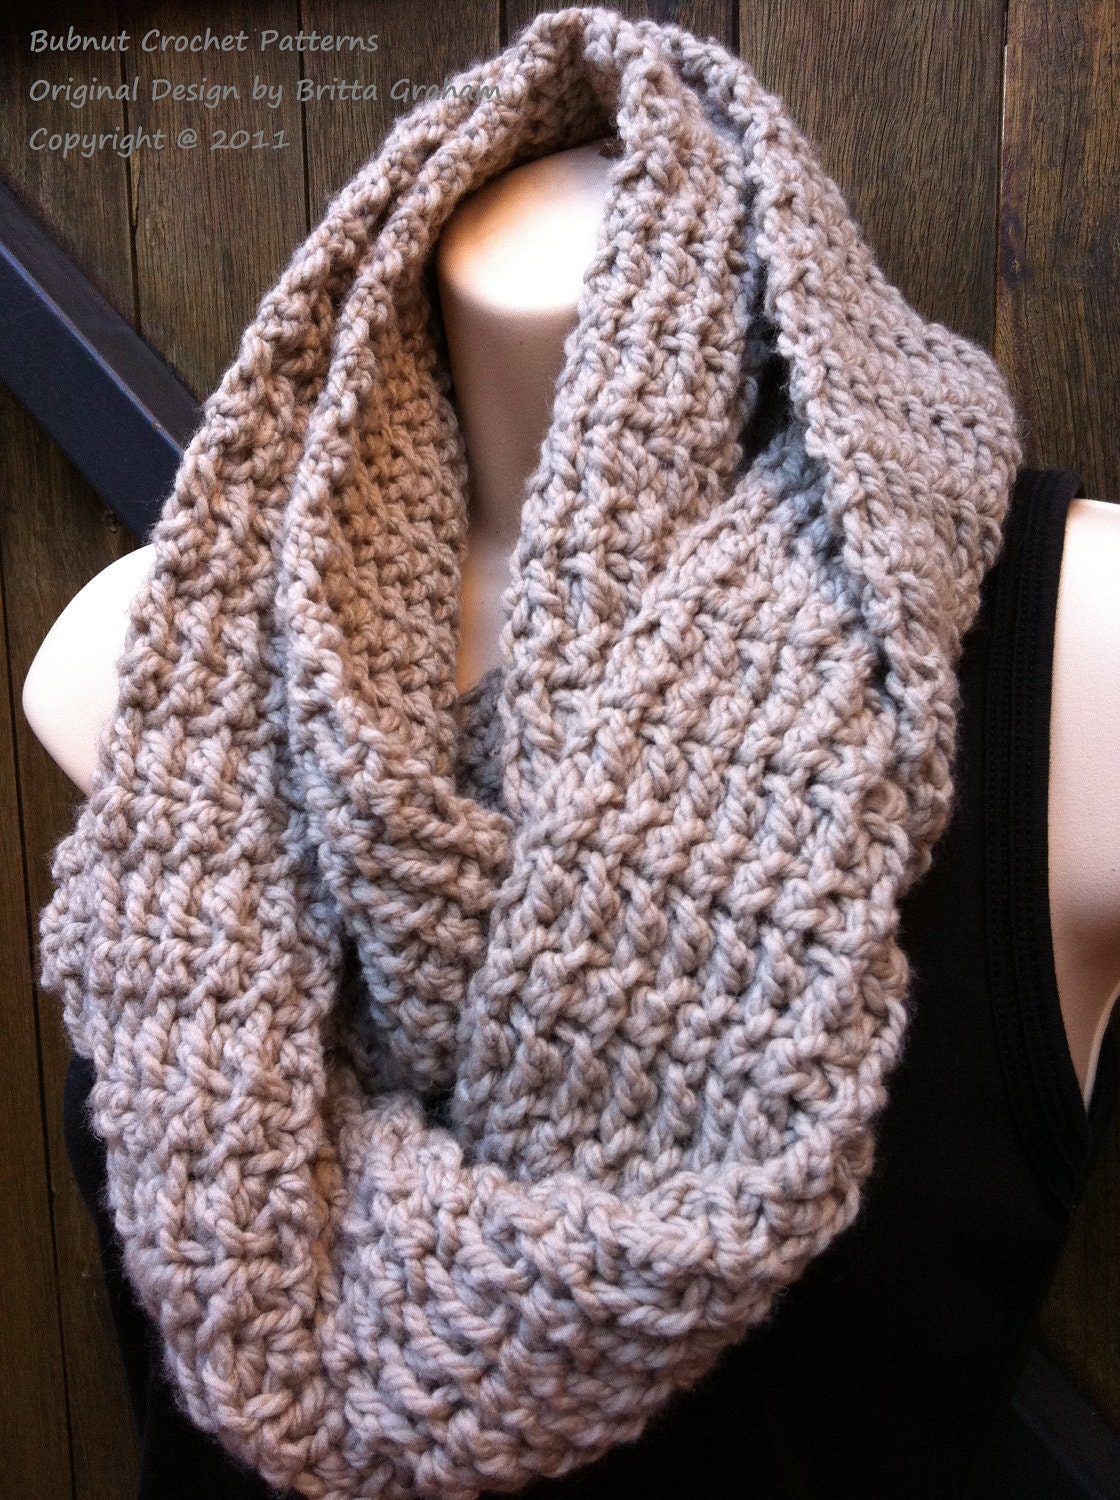 Crochet Infinity Scarf : Infinity Scarf Crochet Pattern available as by bubnutPatterns